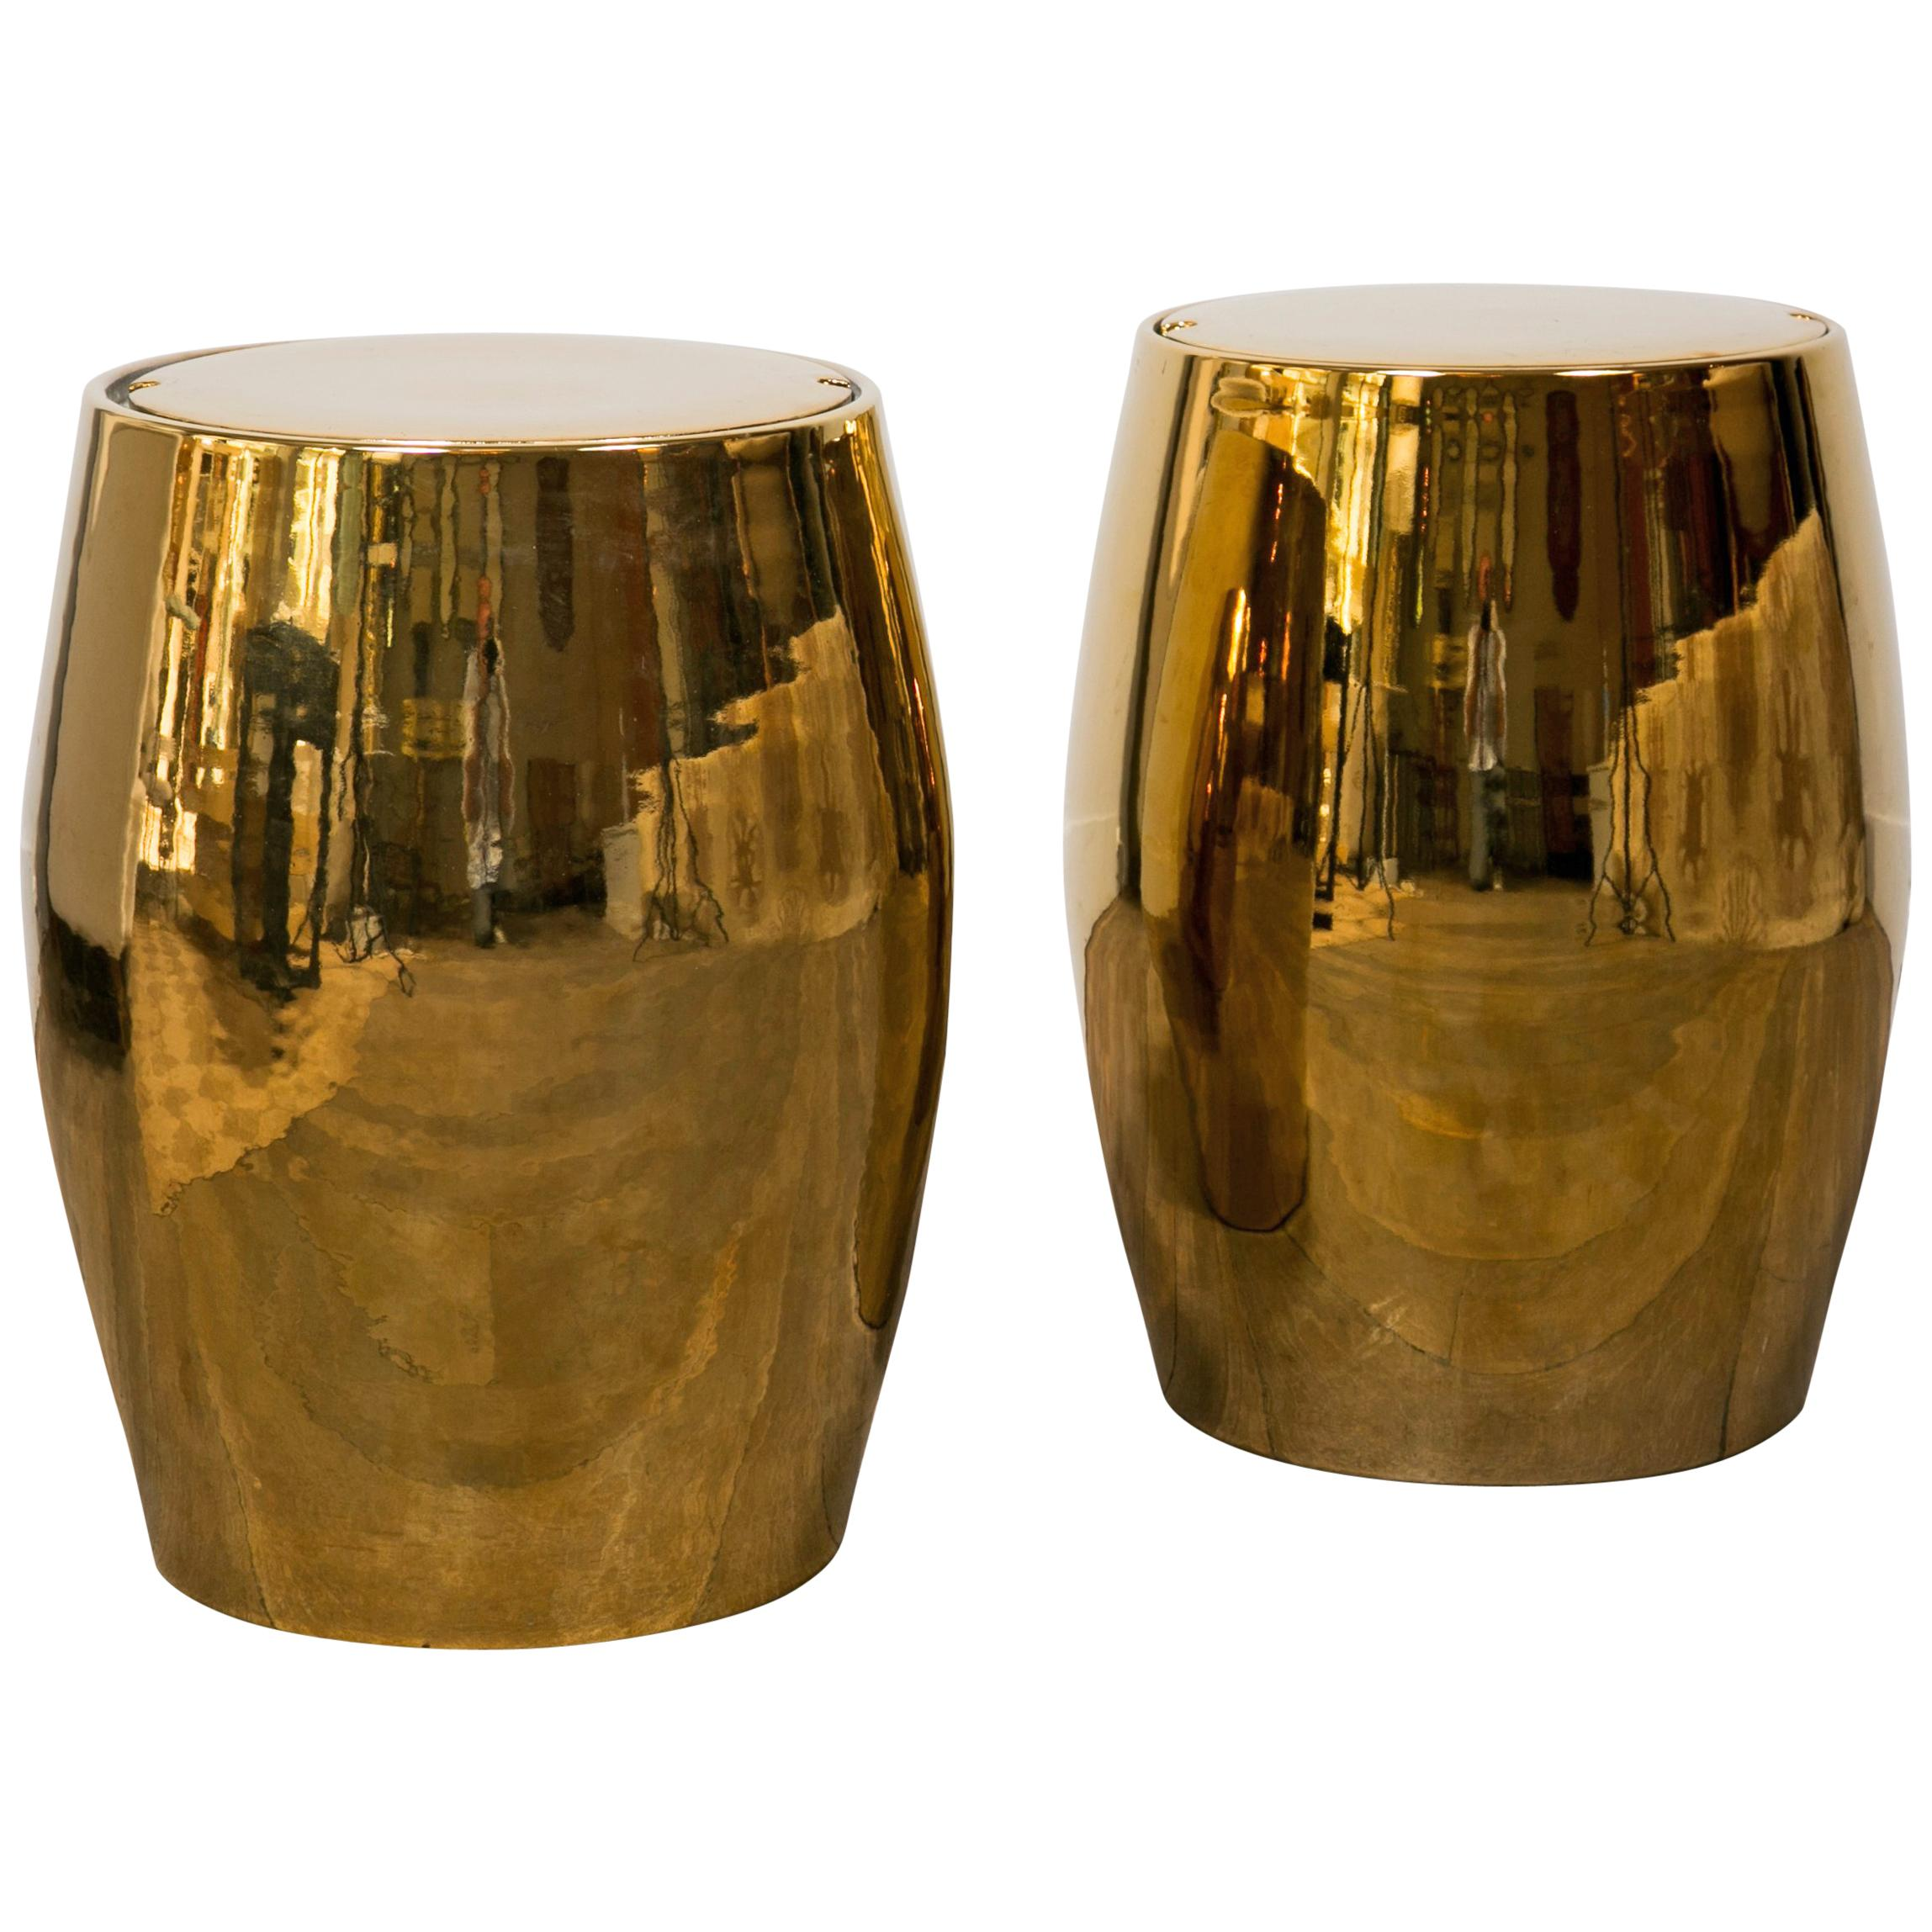 Pair Of Barrel Shaped Stools / End Tables For Sale